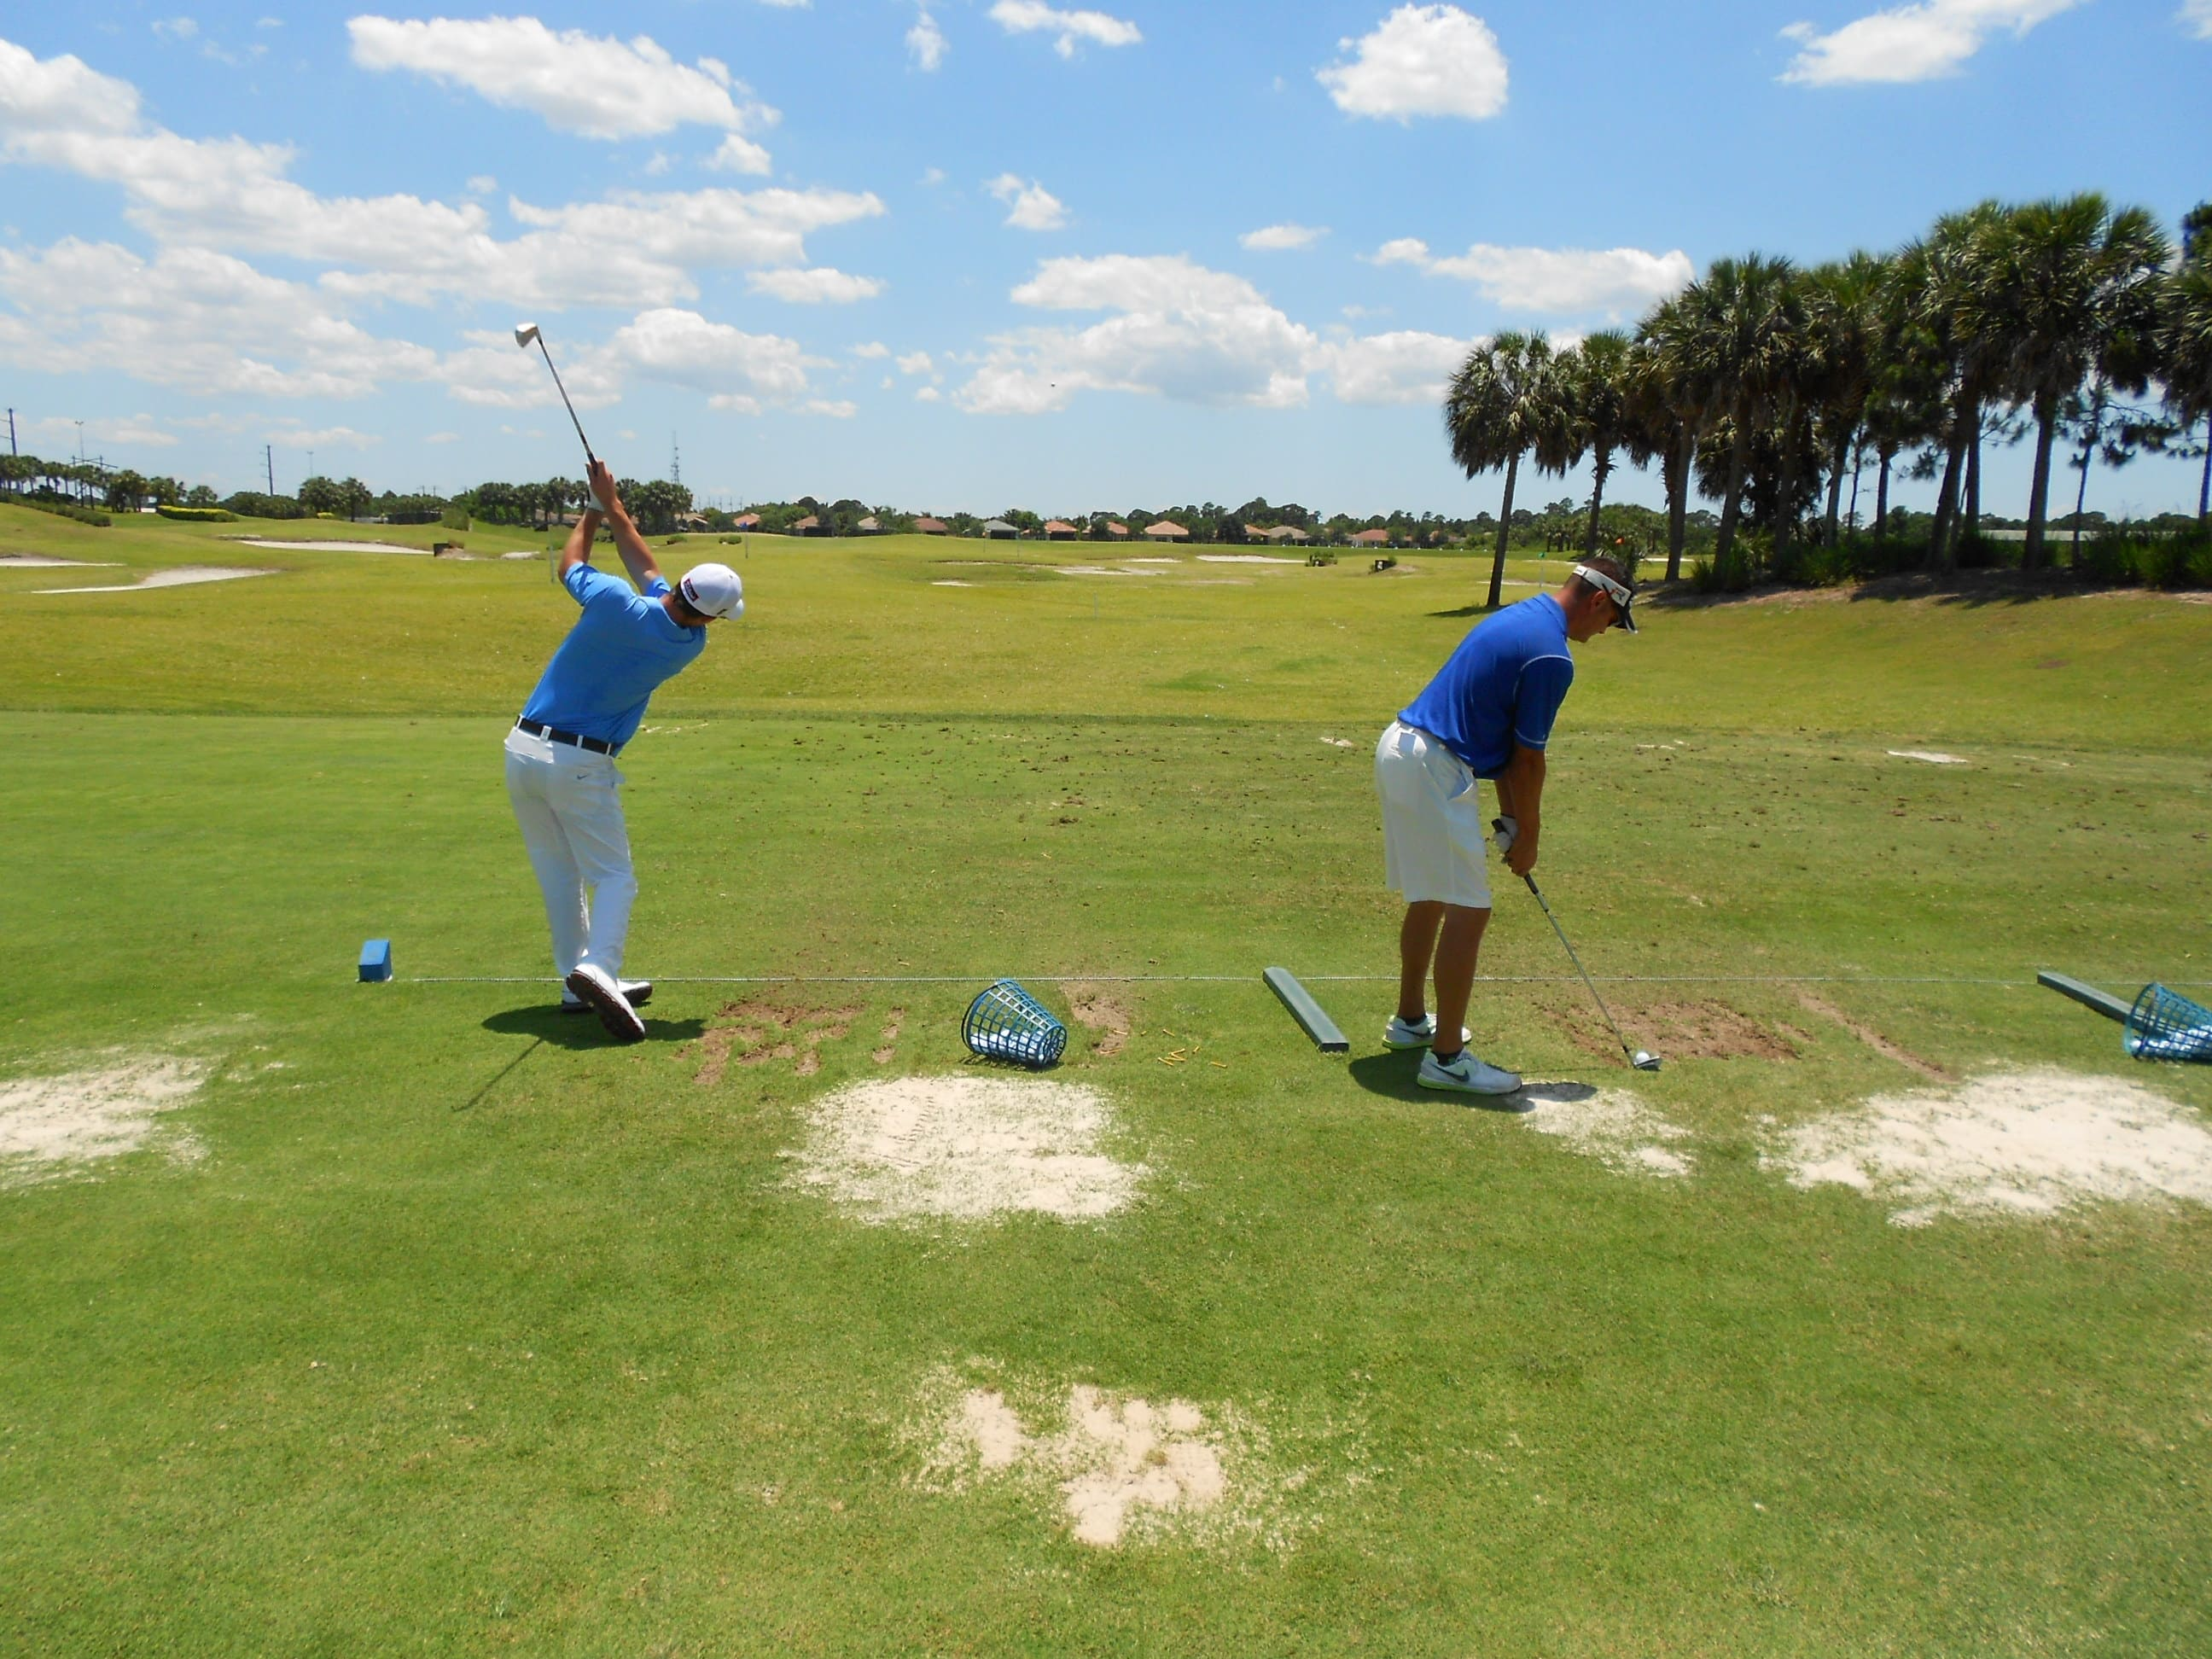 KU College of Golf & Sport Management Staff Offer Impact Zone Clinics for Students